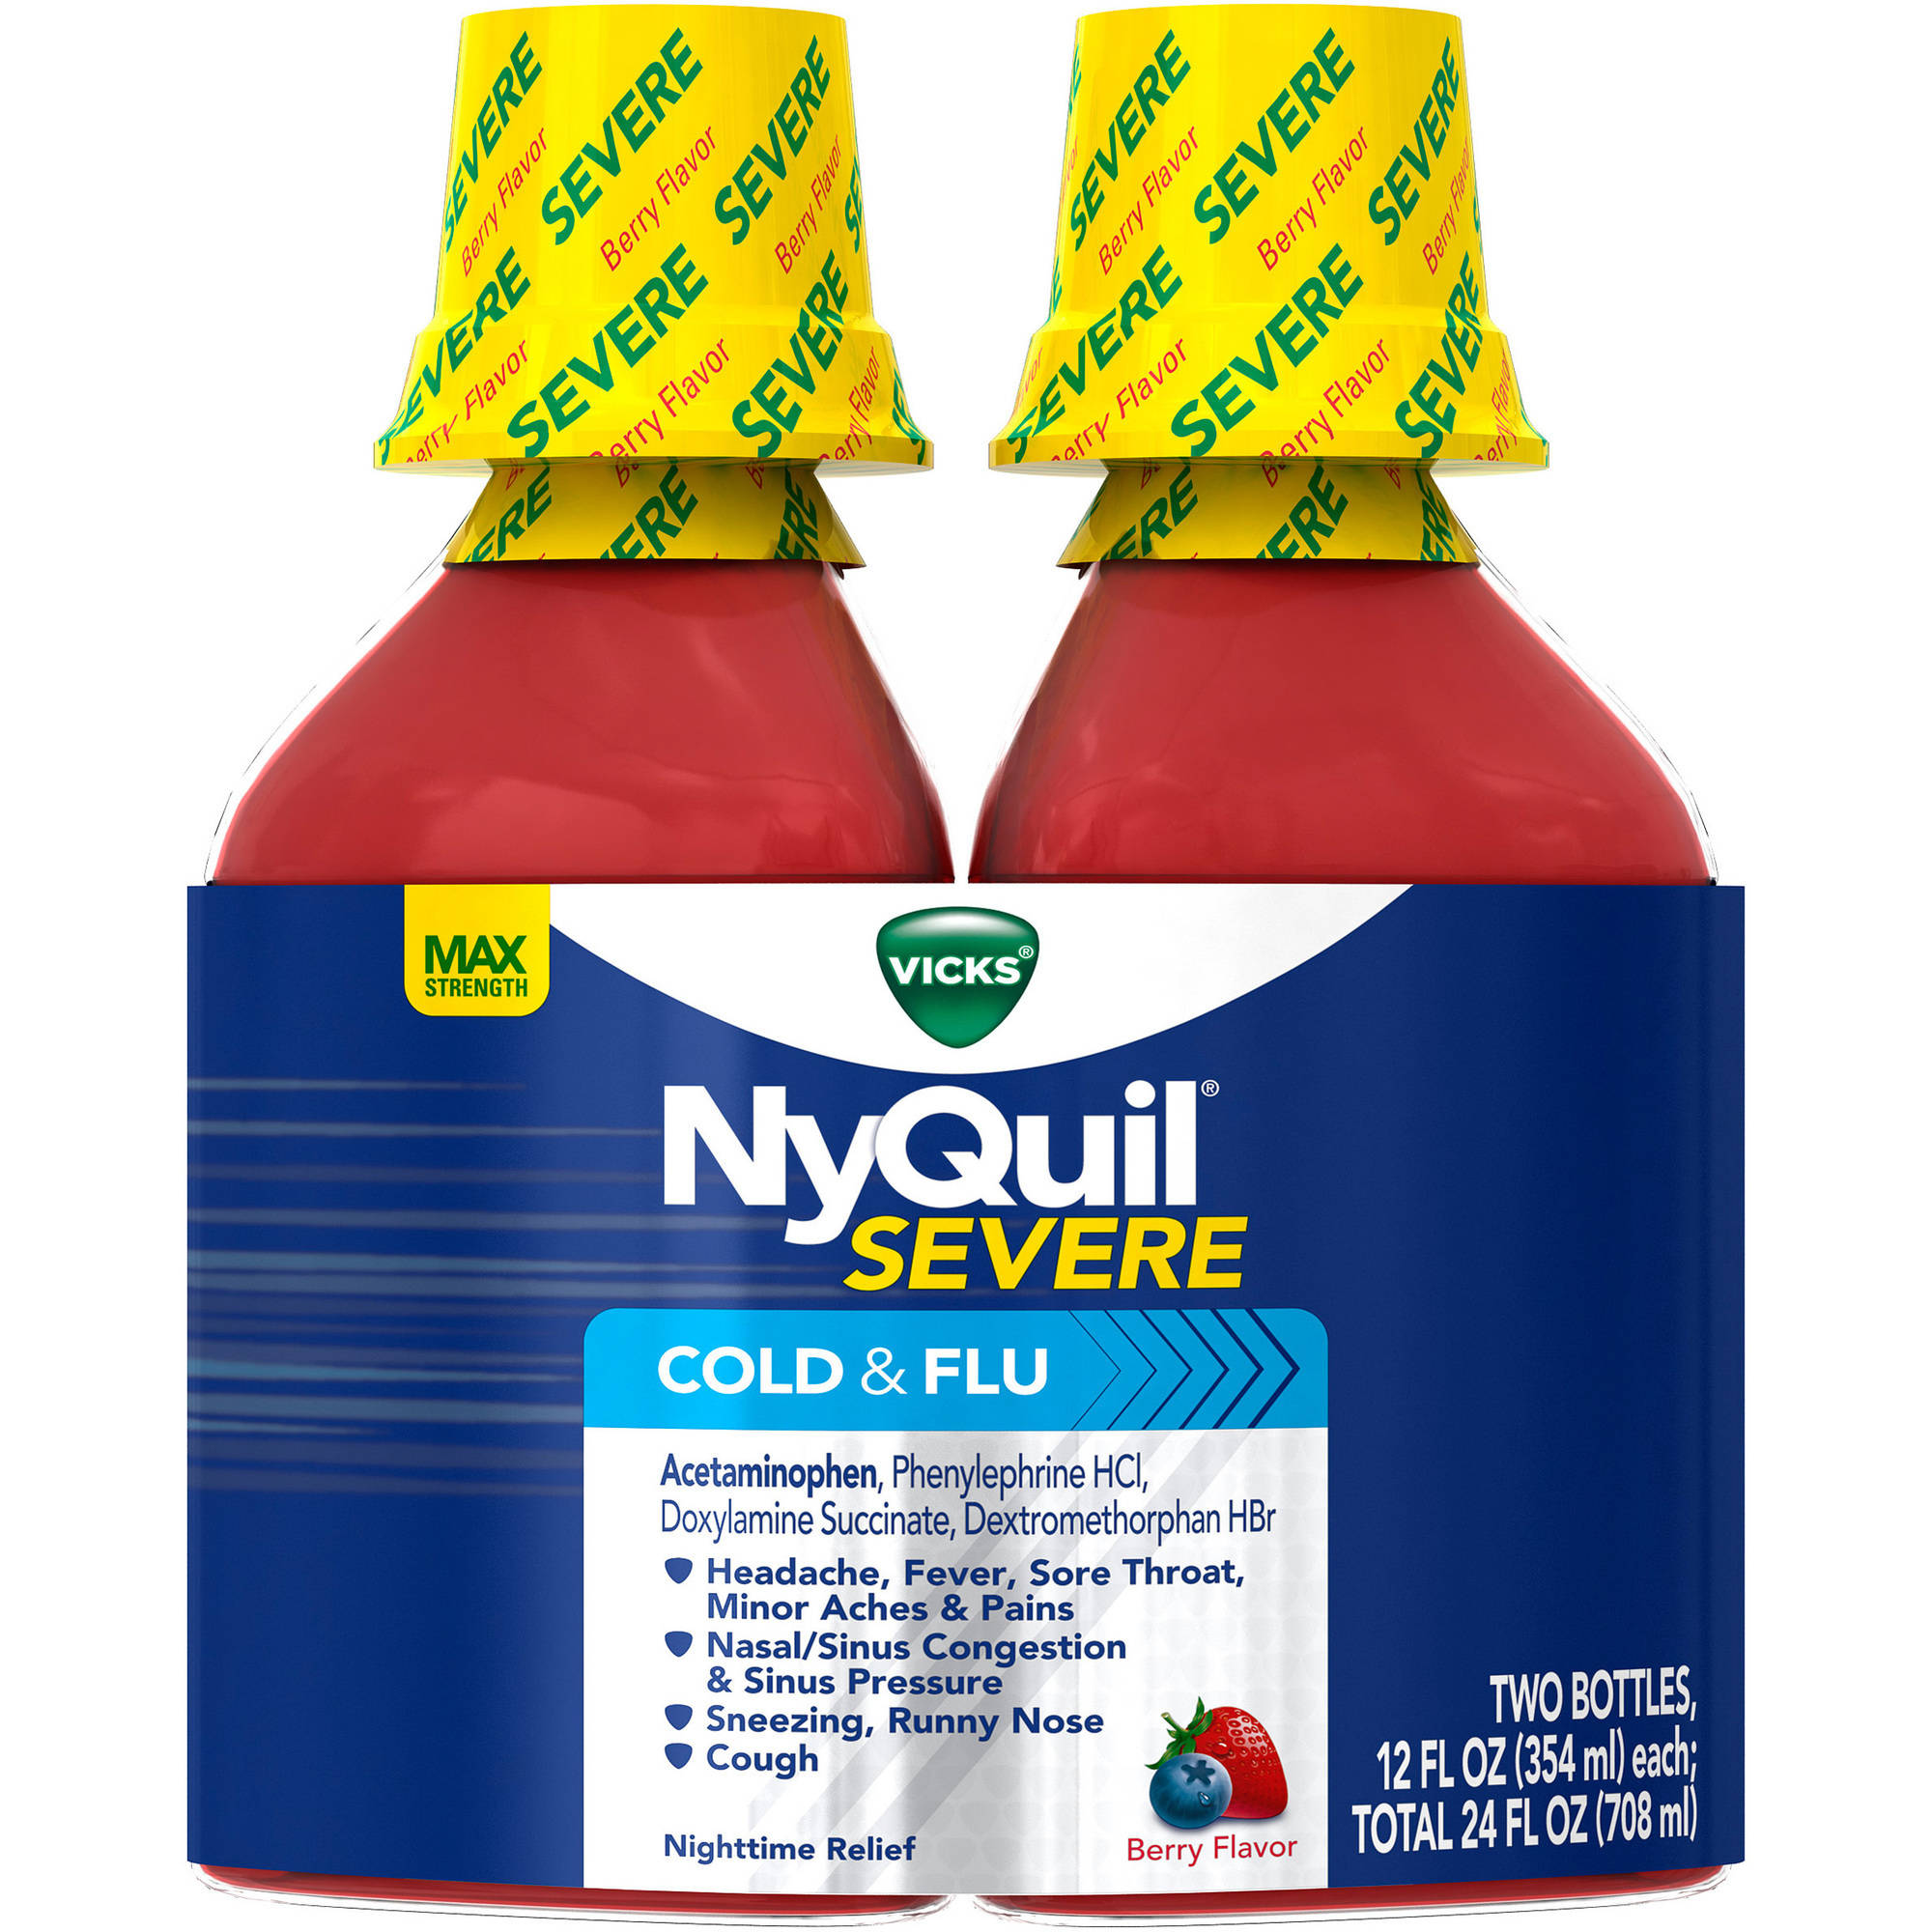 Vicks NyQuil Severe Cold & Flu Relief Berry Flavored Liquid Cold Medicine, 12 fl oz, (Pack of 2)